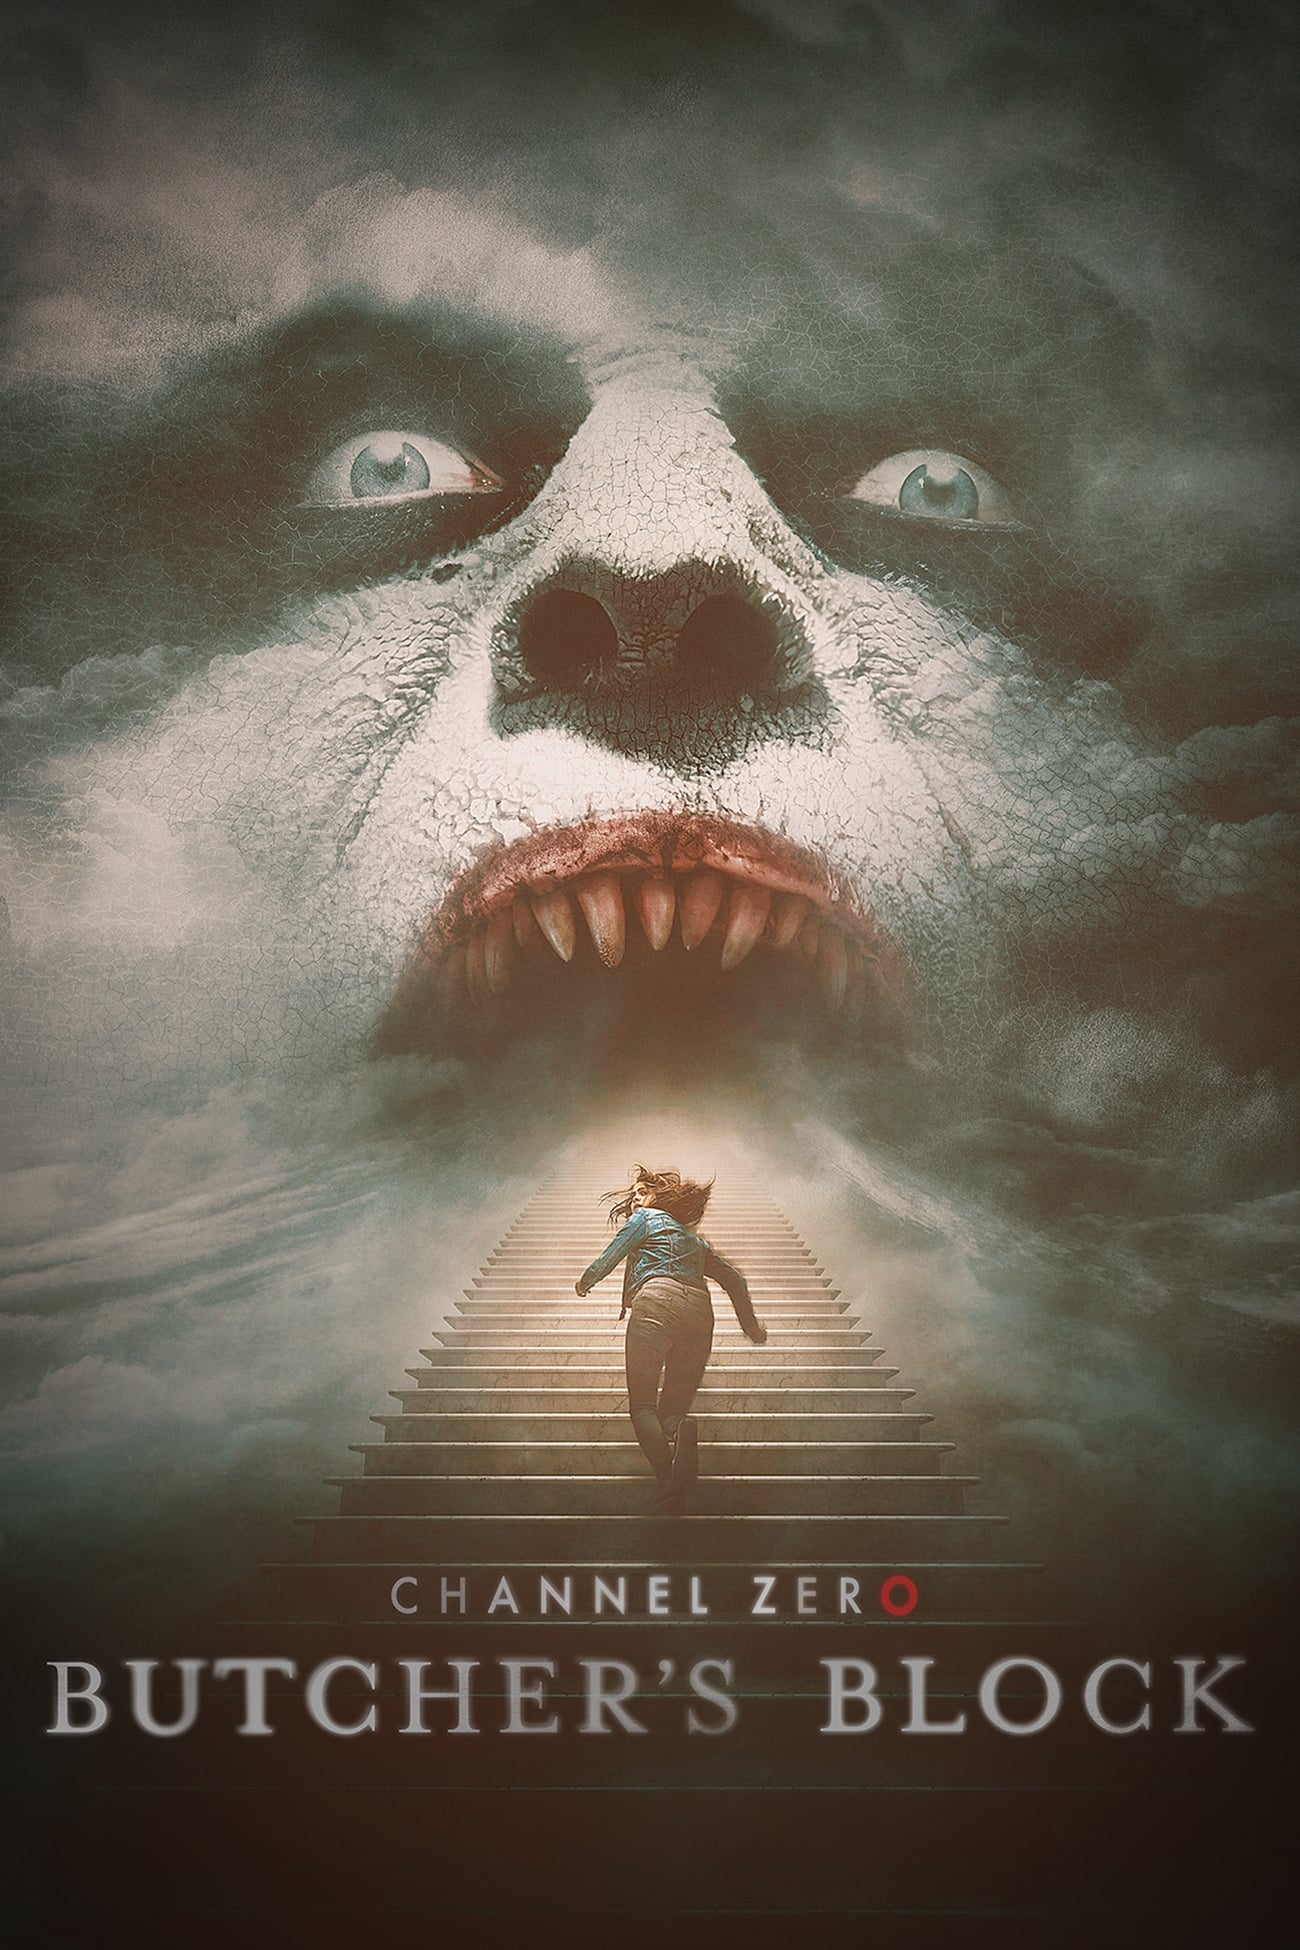 Channel zero: No end House Poster